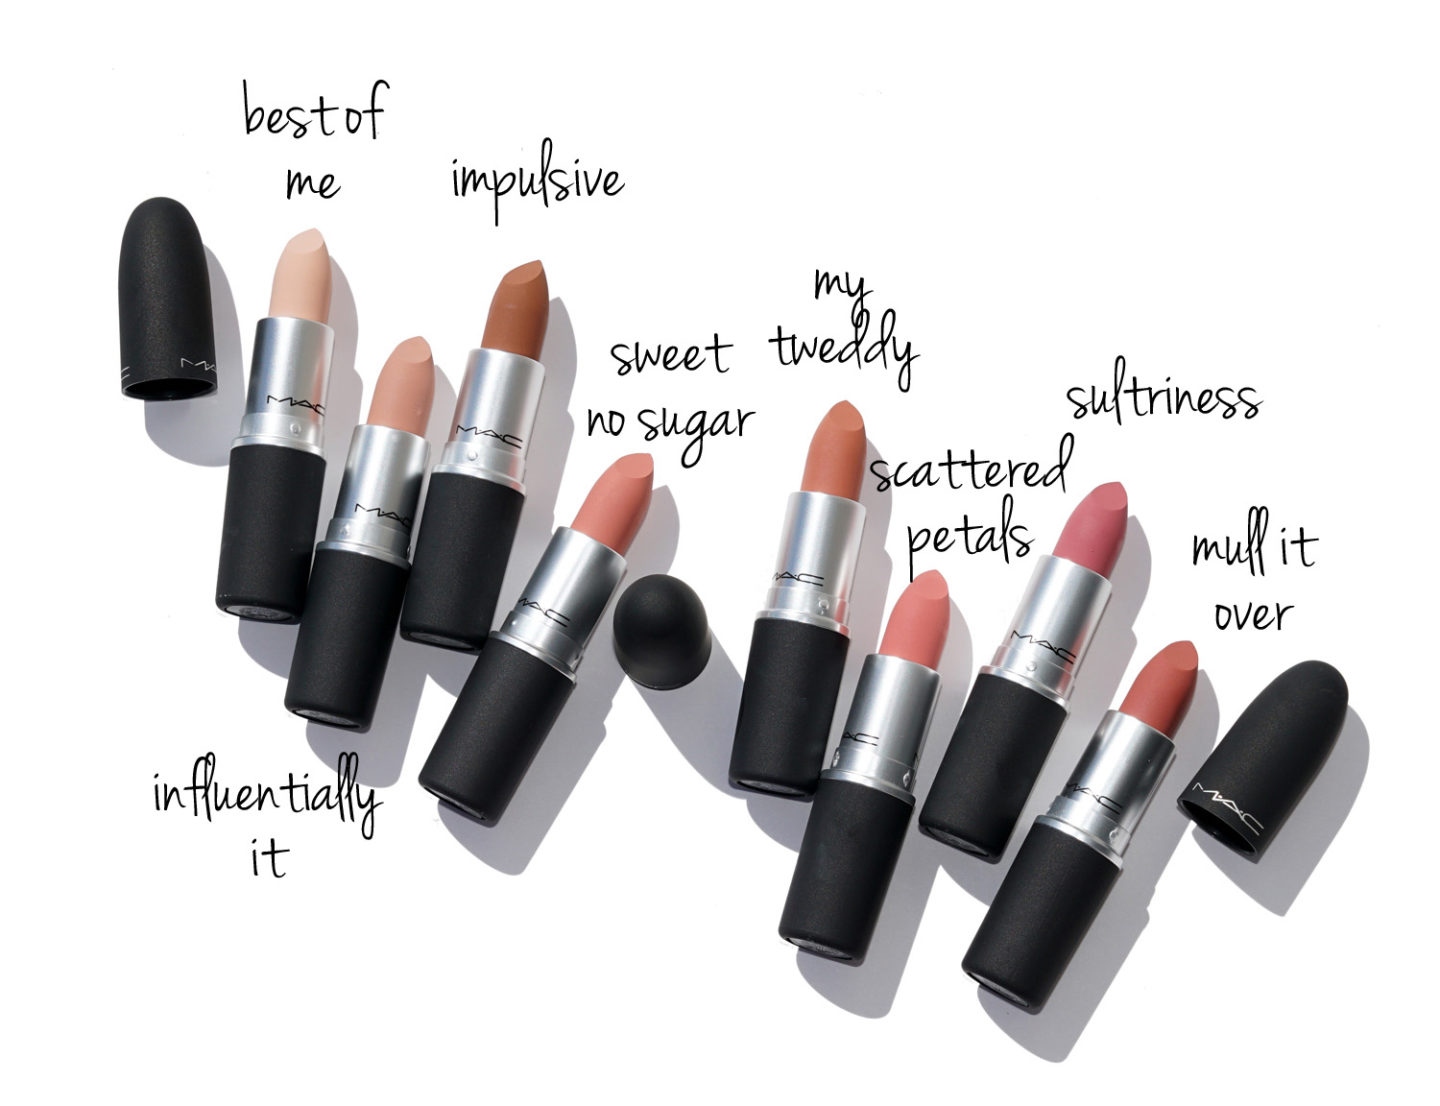 MAC Powder Kiss Best of Me, Influentially It, Impulsive, Sweet No Sugar, My Tweedy, Scattered Petals, Sultriness and Mull it Over